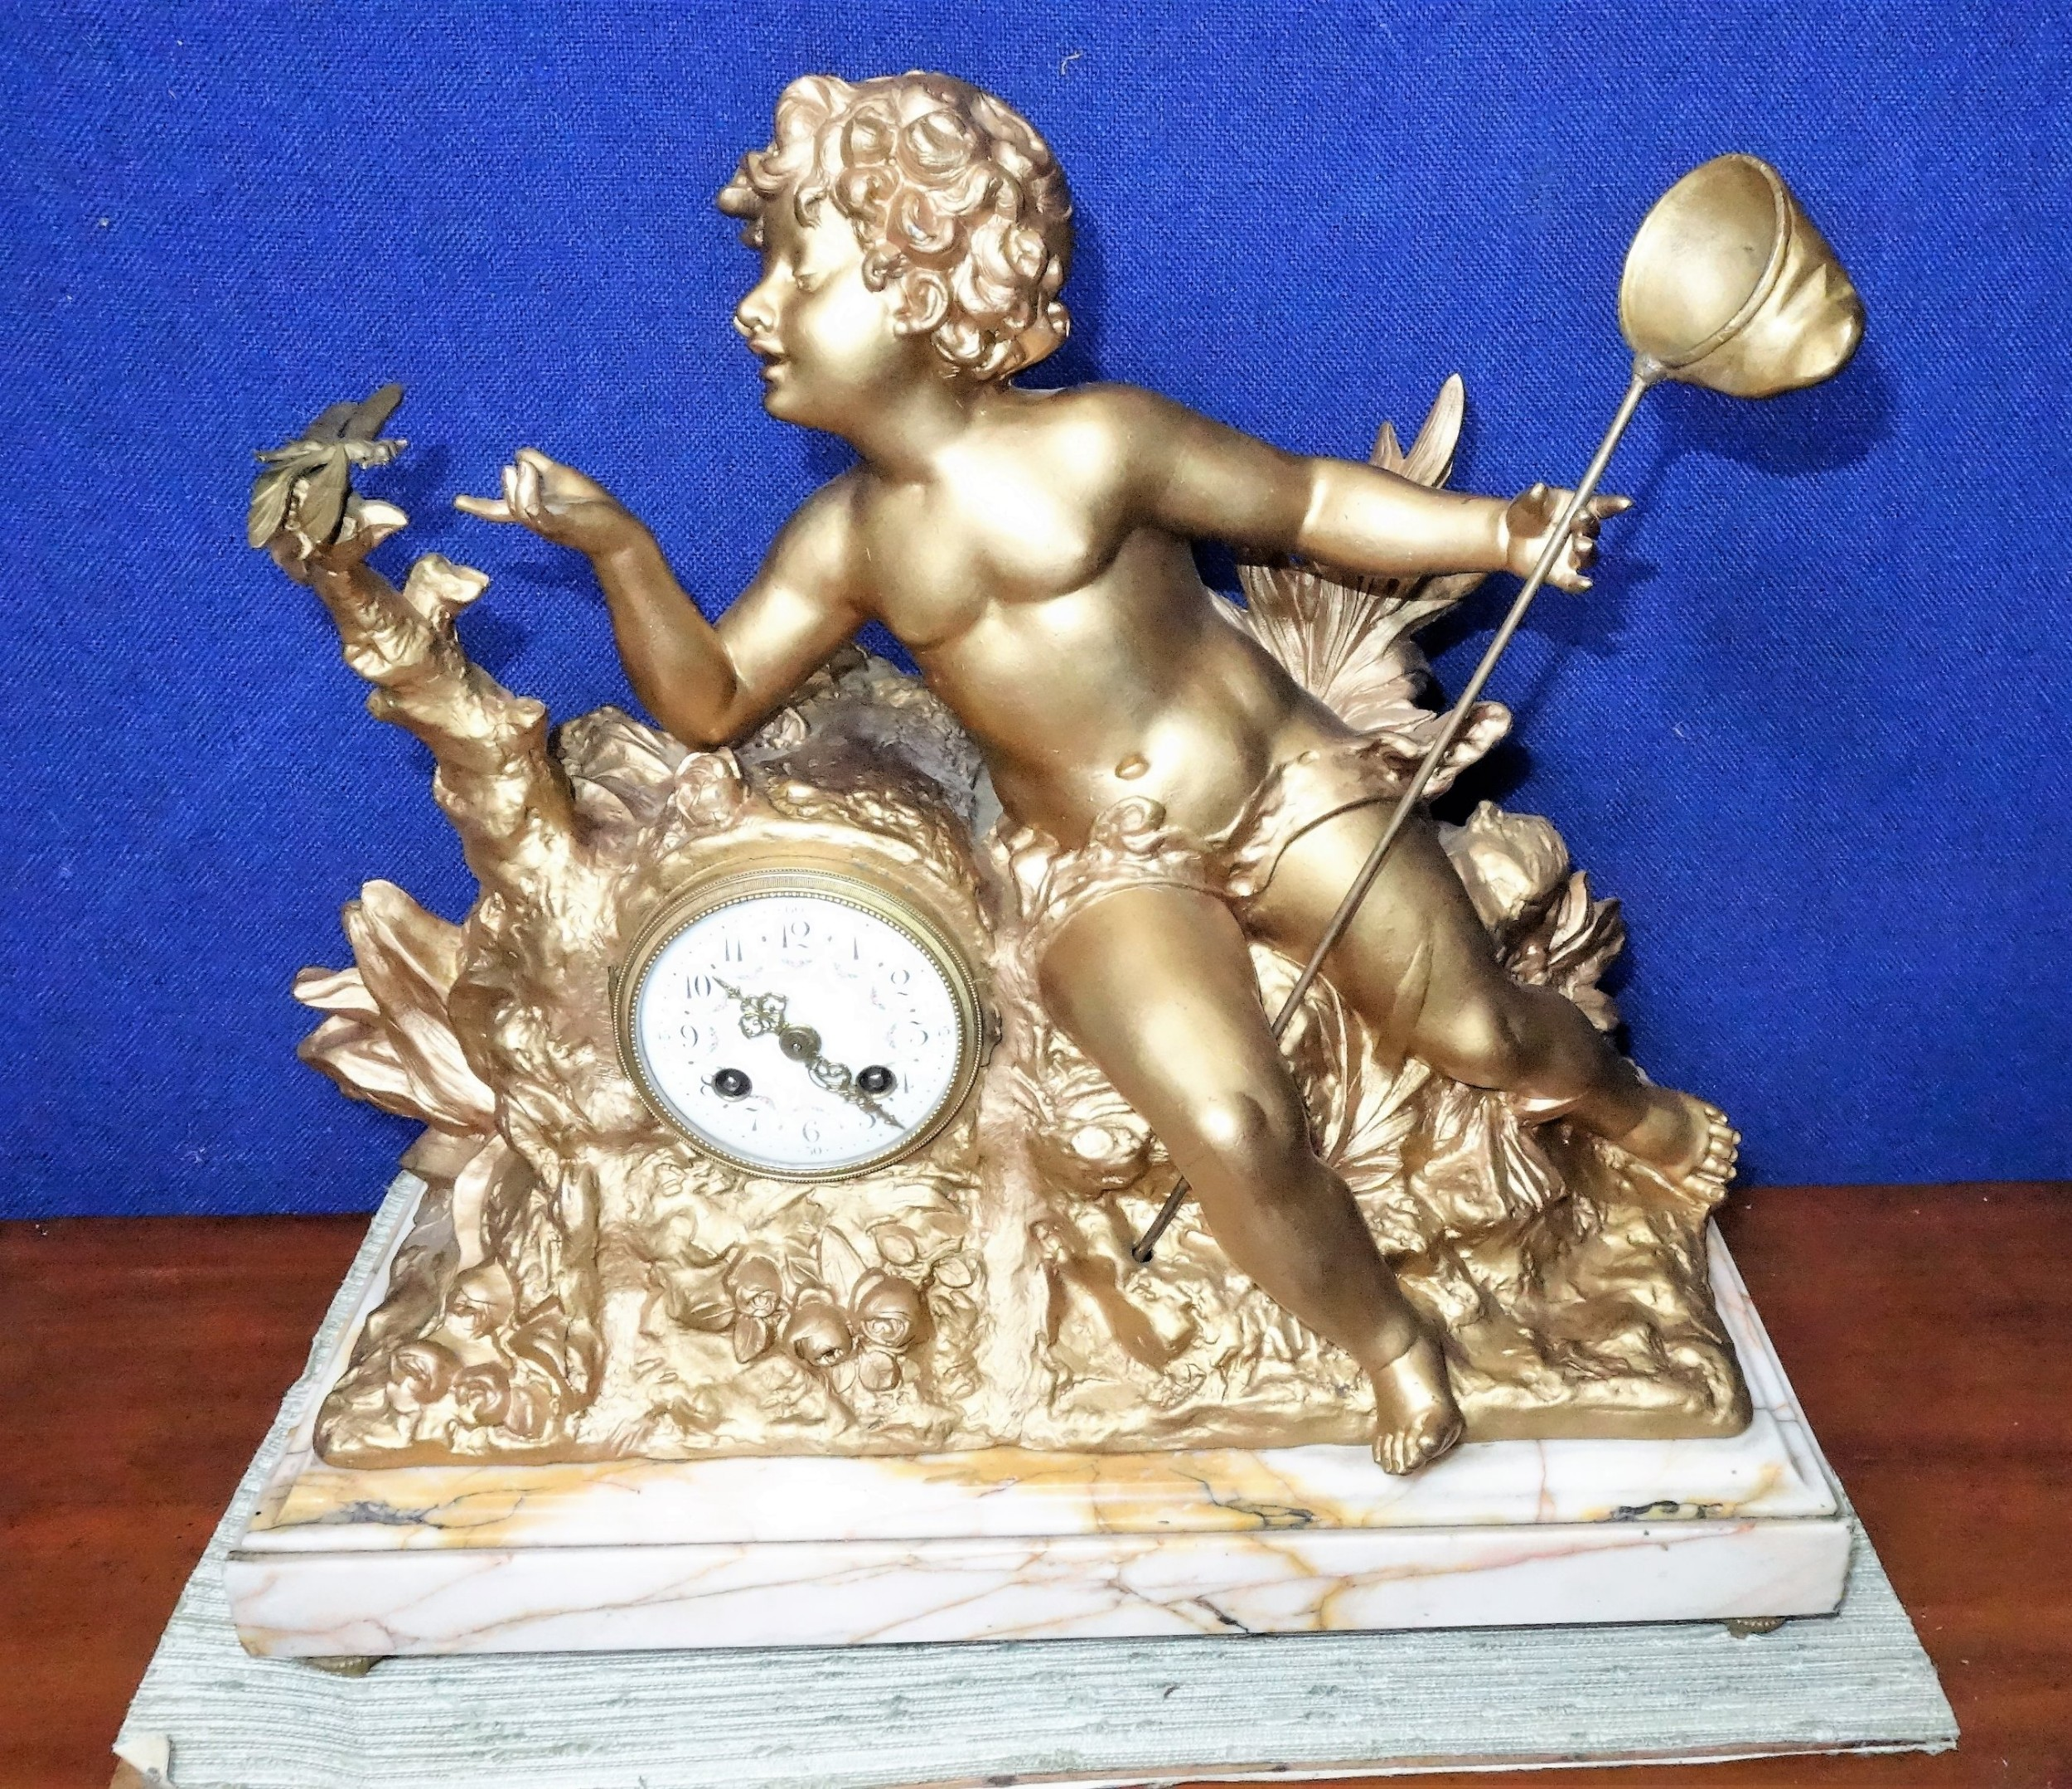 charming impressive cherub dragonfly 19th century gilt french mantelmantle or table clock with substantial variegated marble stand